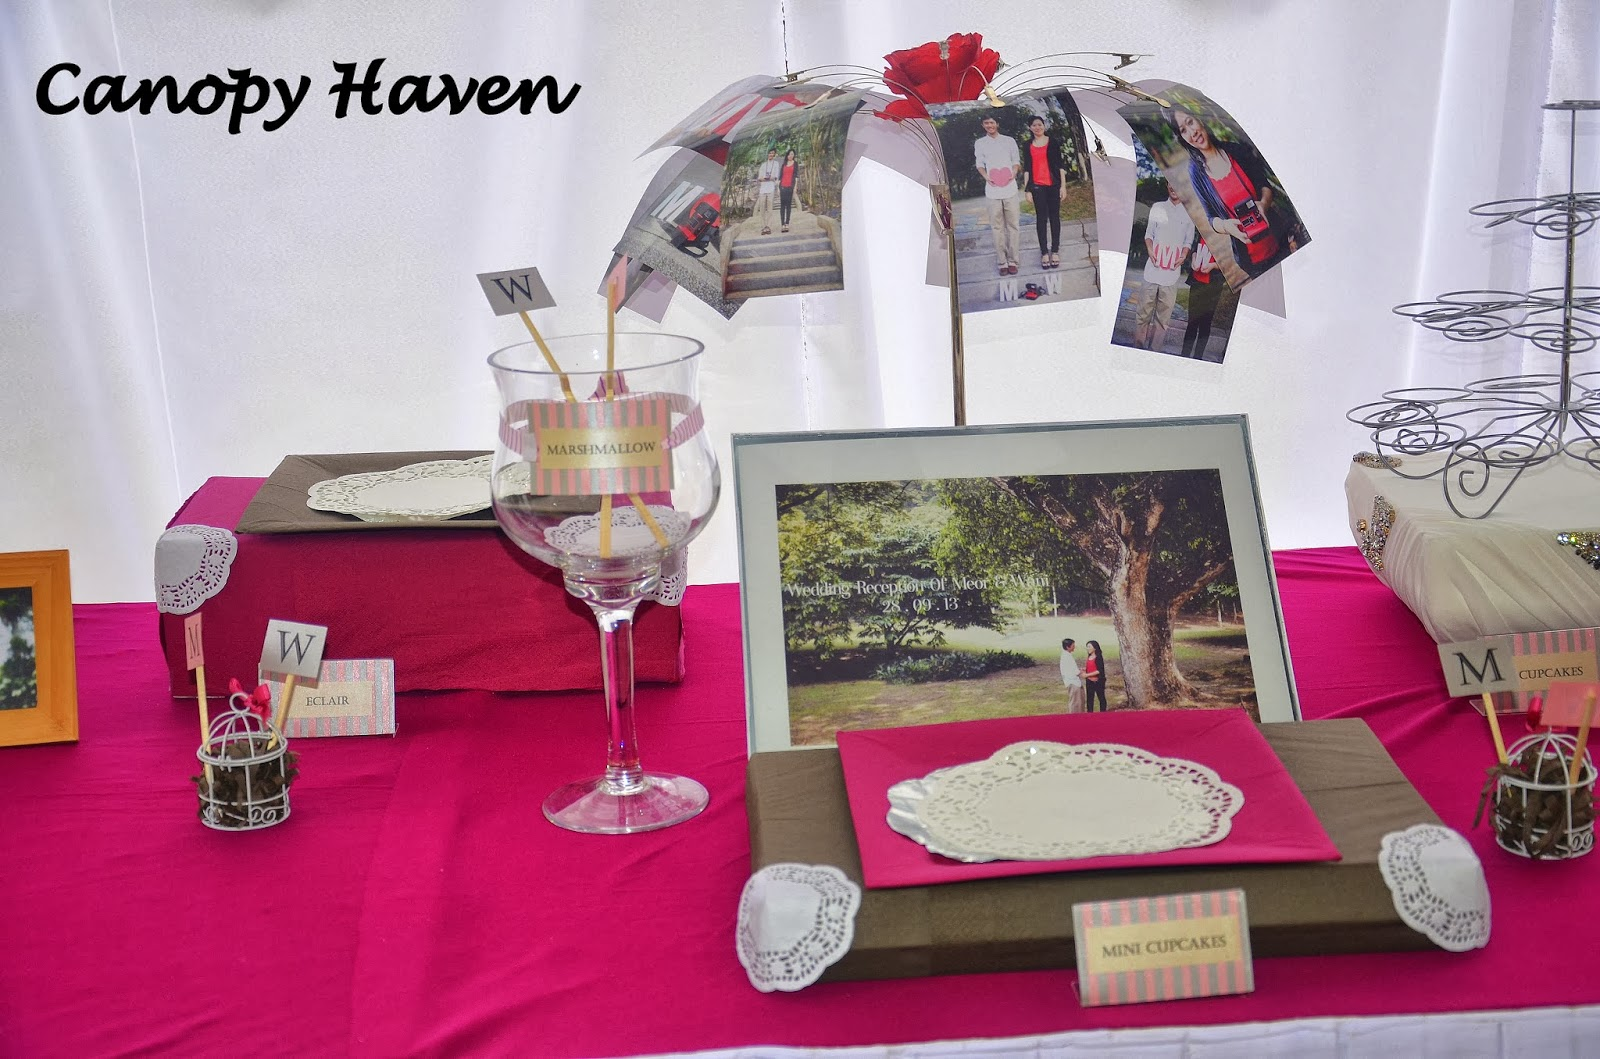 Our latest candy buffet u0026 guestbook setup. Combinations of mauve u0026 grey color with the initials of the bride u0026 groom & CANOPY HAVEN: Candy Buffet u0026 Guestbook Setup !